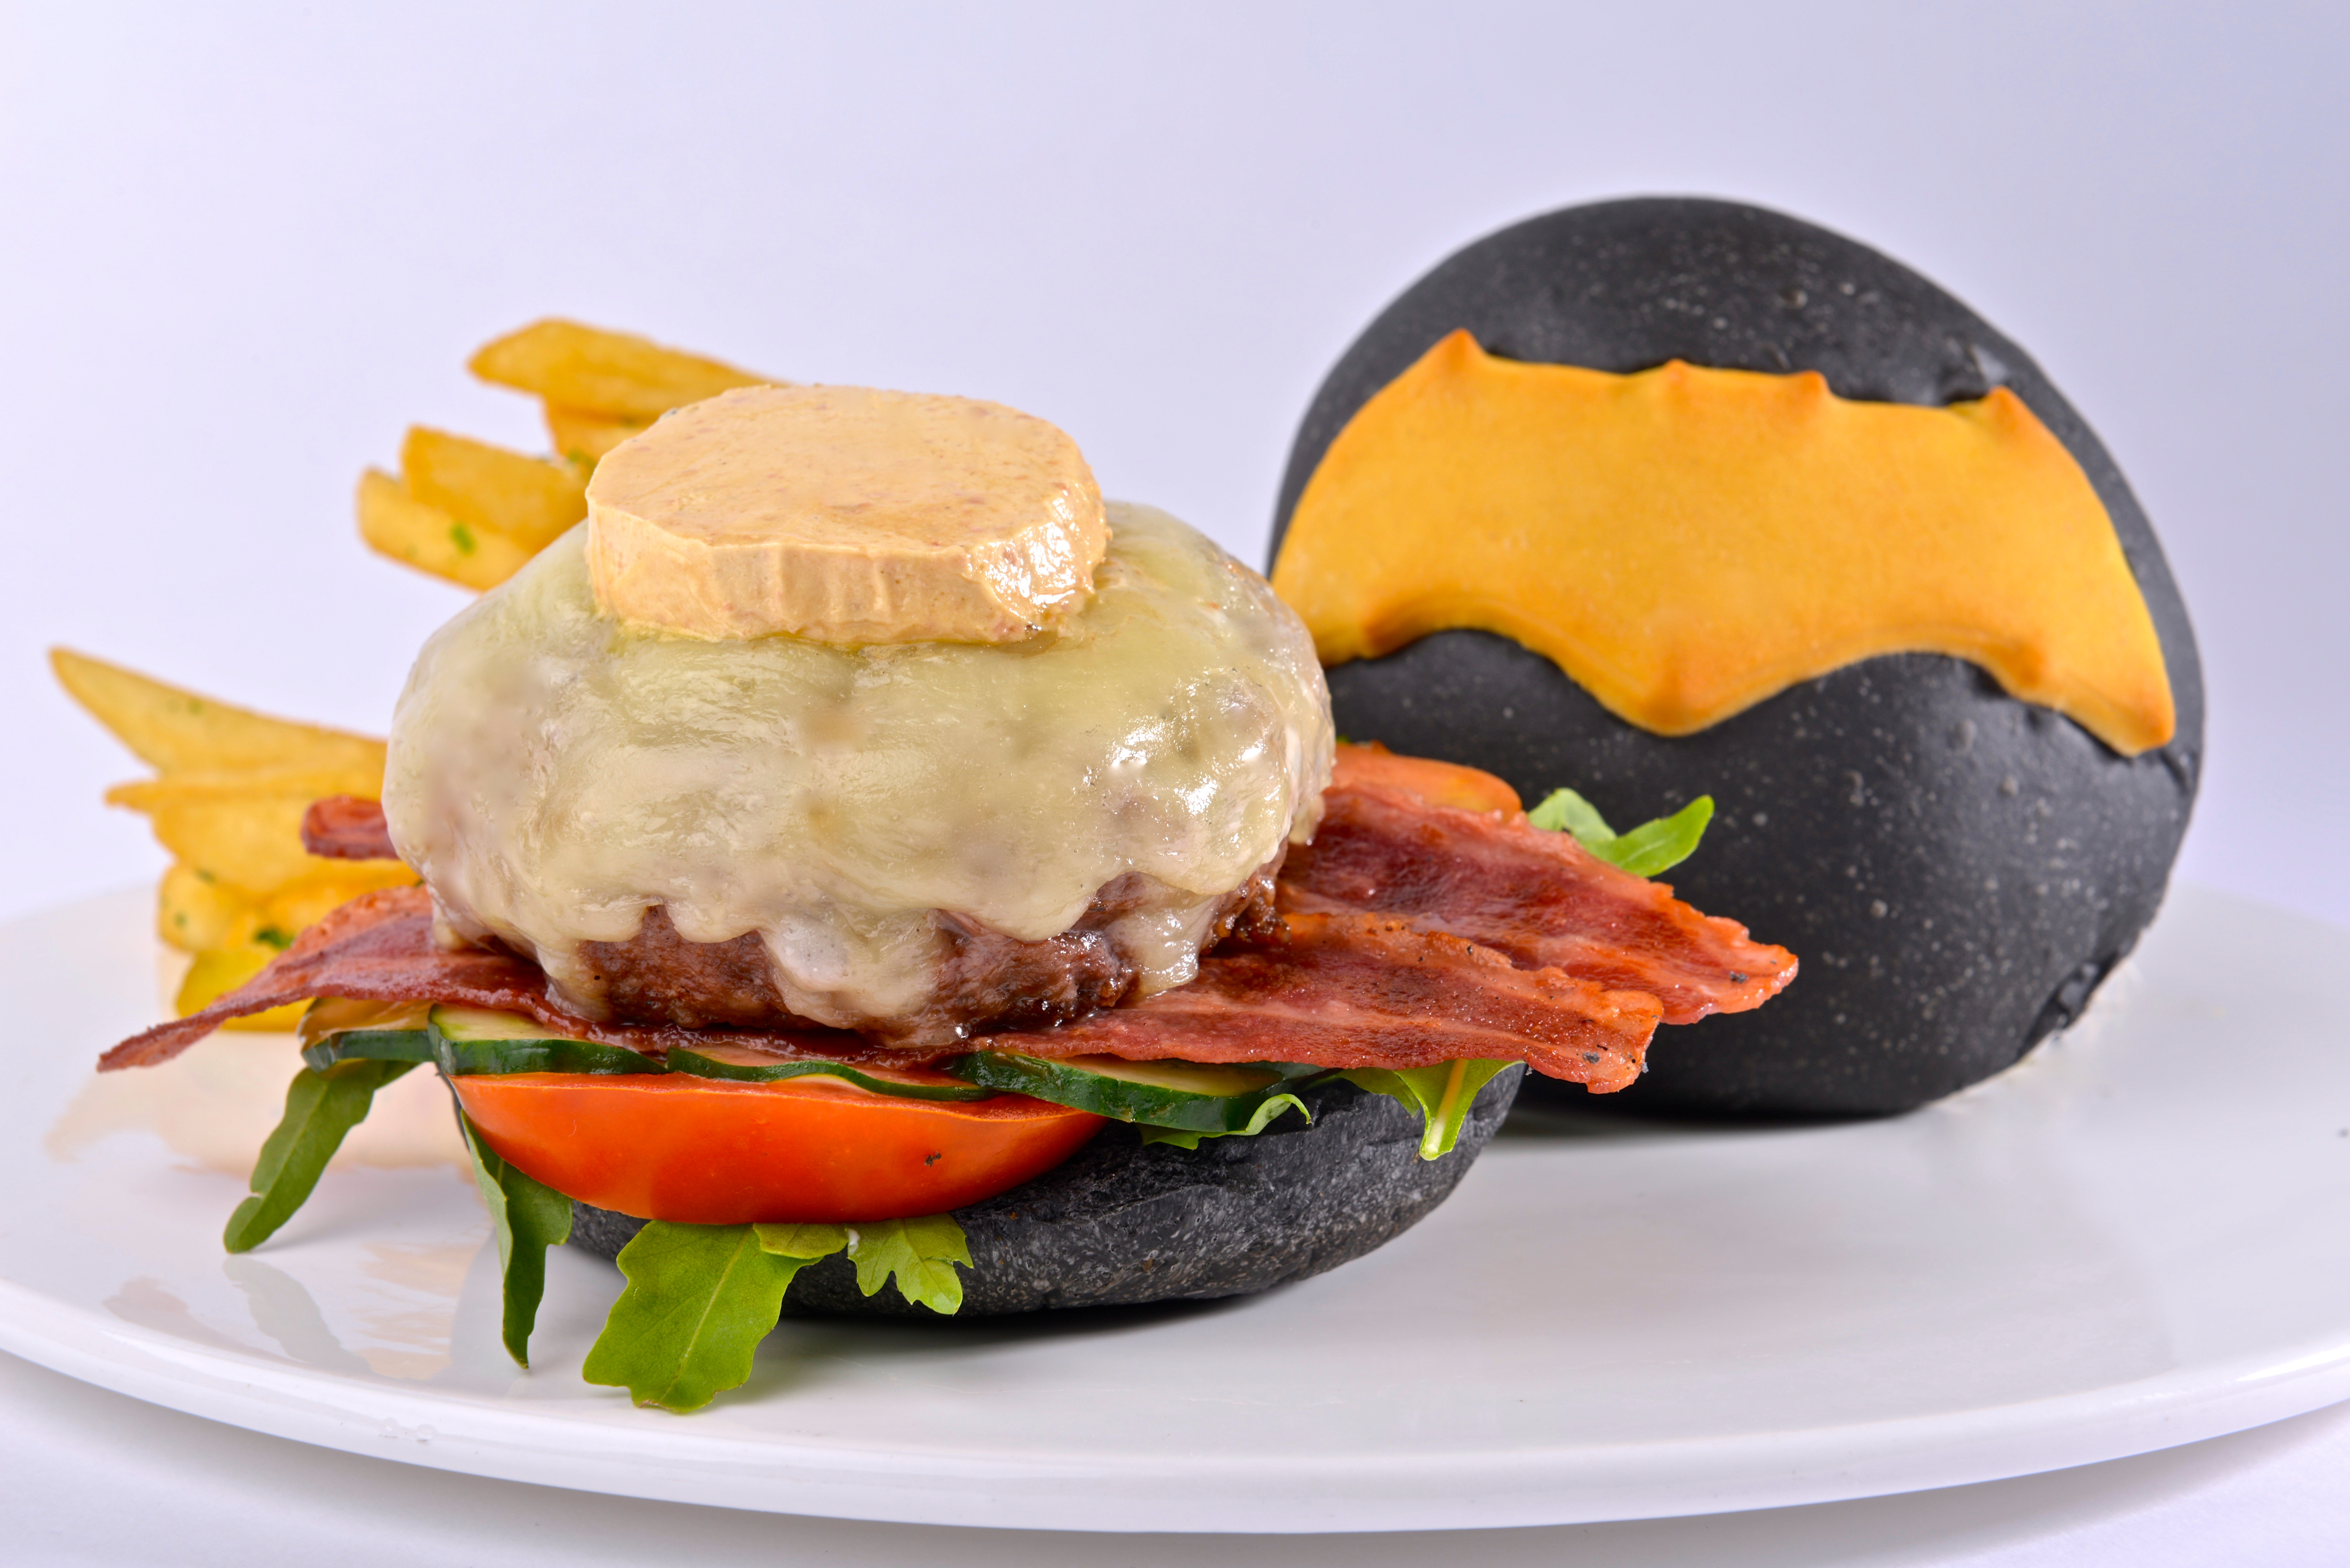 BvS Batman's Wagyu Beef Jaw Burger